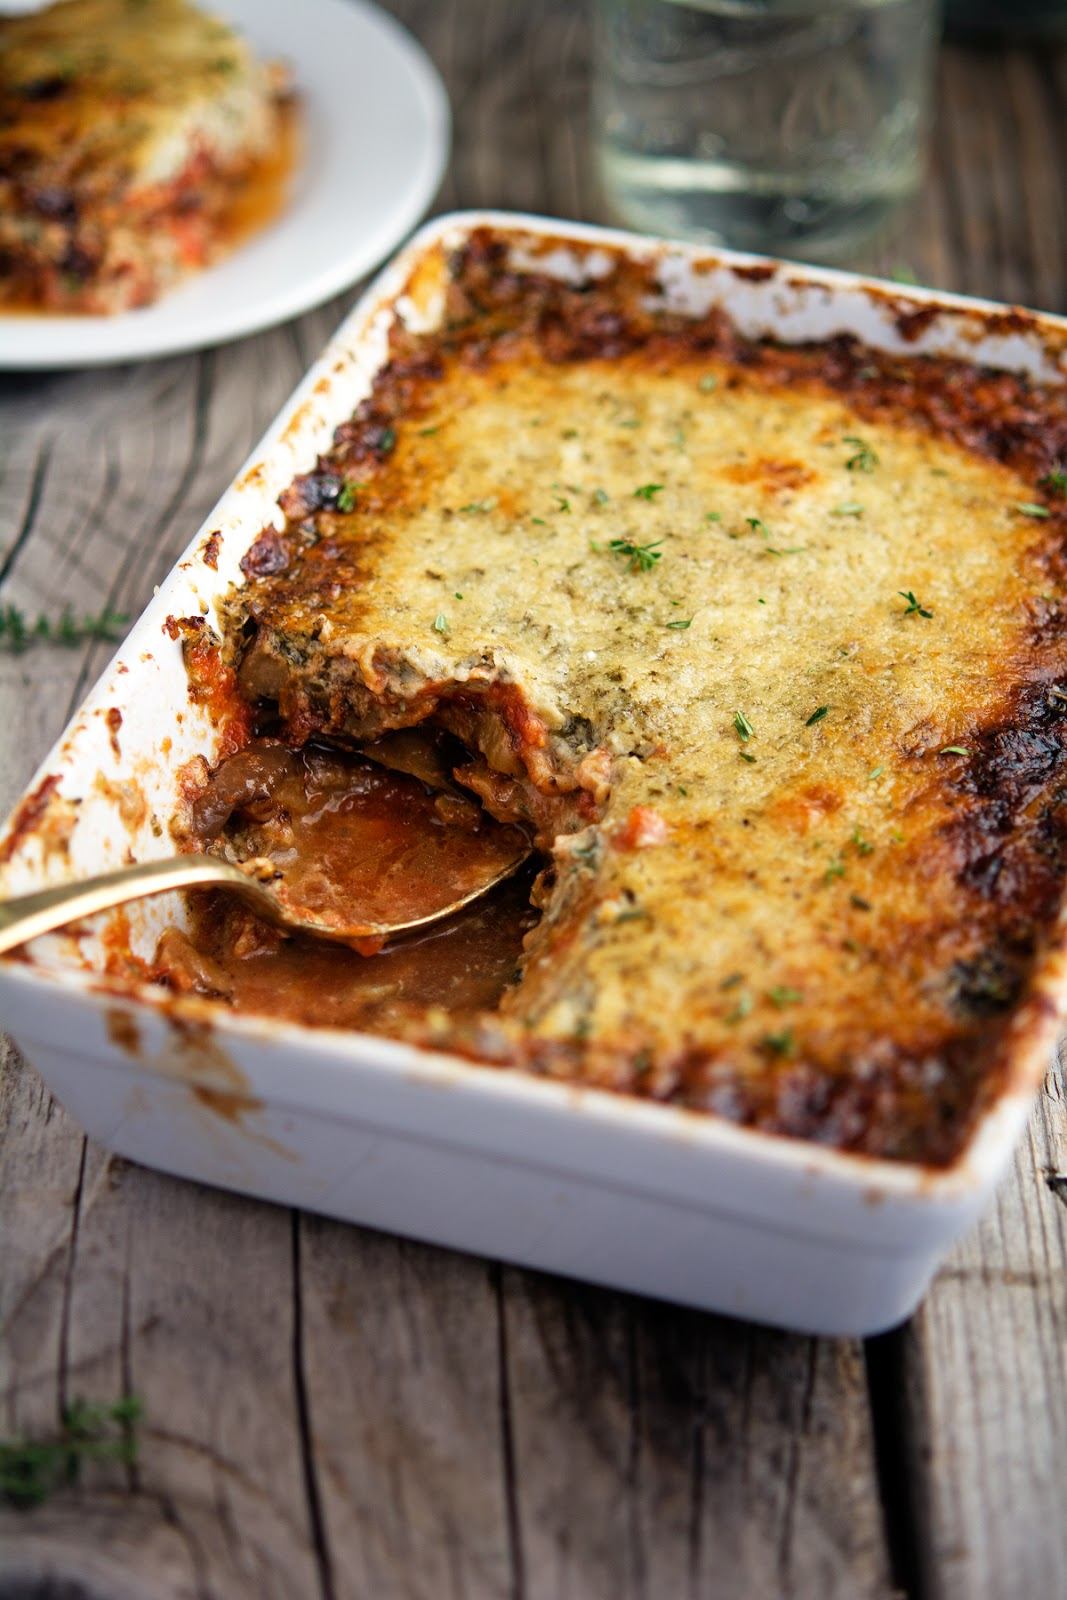 Eggplant Gratin with Tomato Herbs and Creme Fraiche